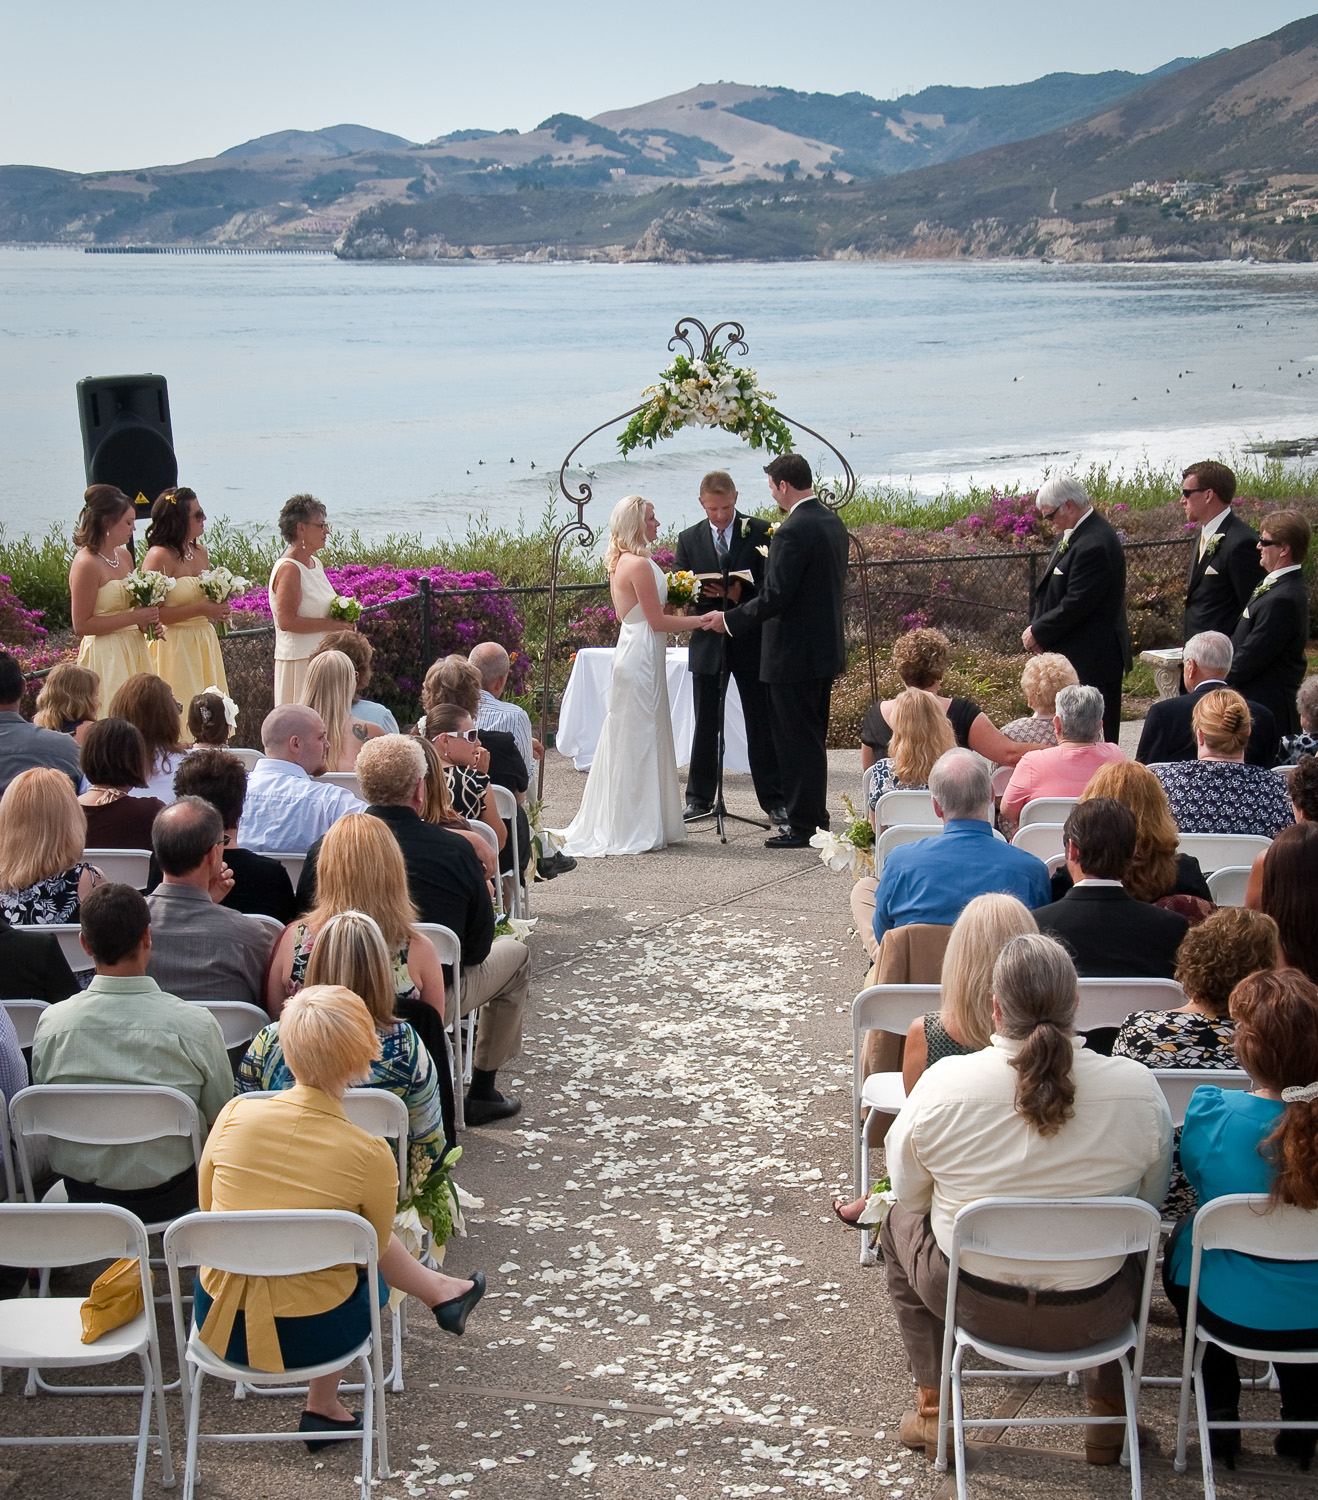 Couple S Wedding Ceremony And Reception Held At The Beach: Tony A. Hertz Wedding Photography